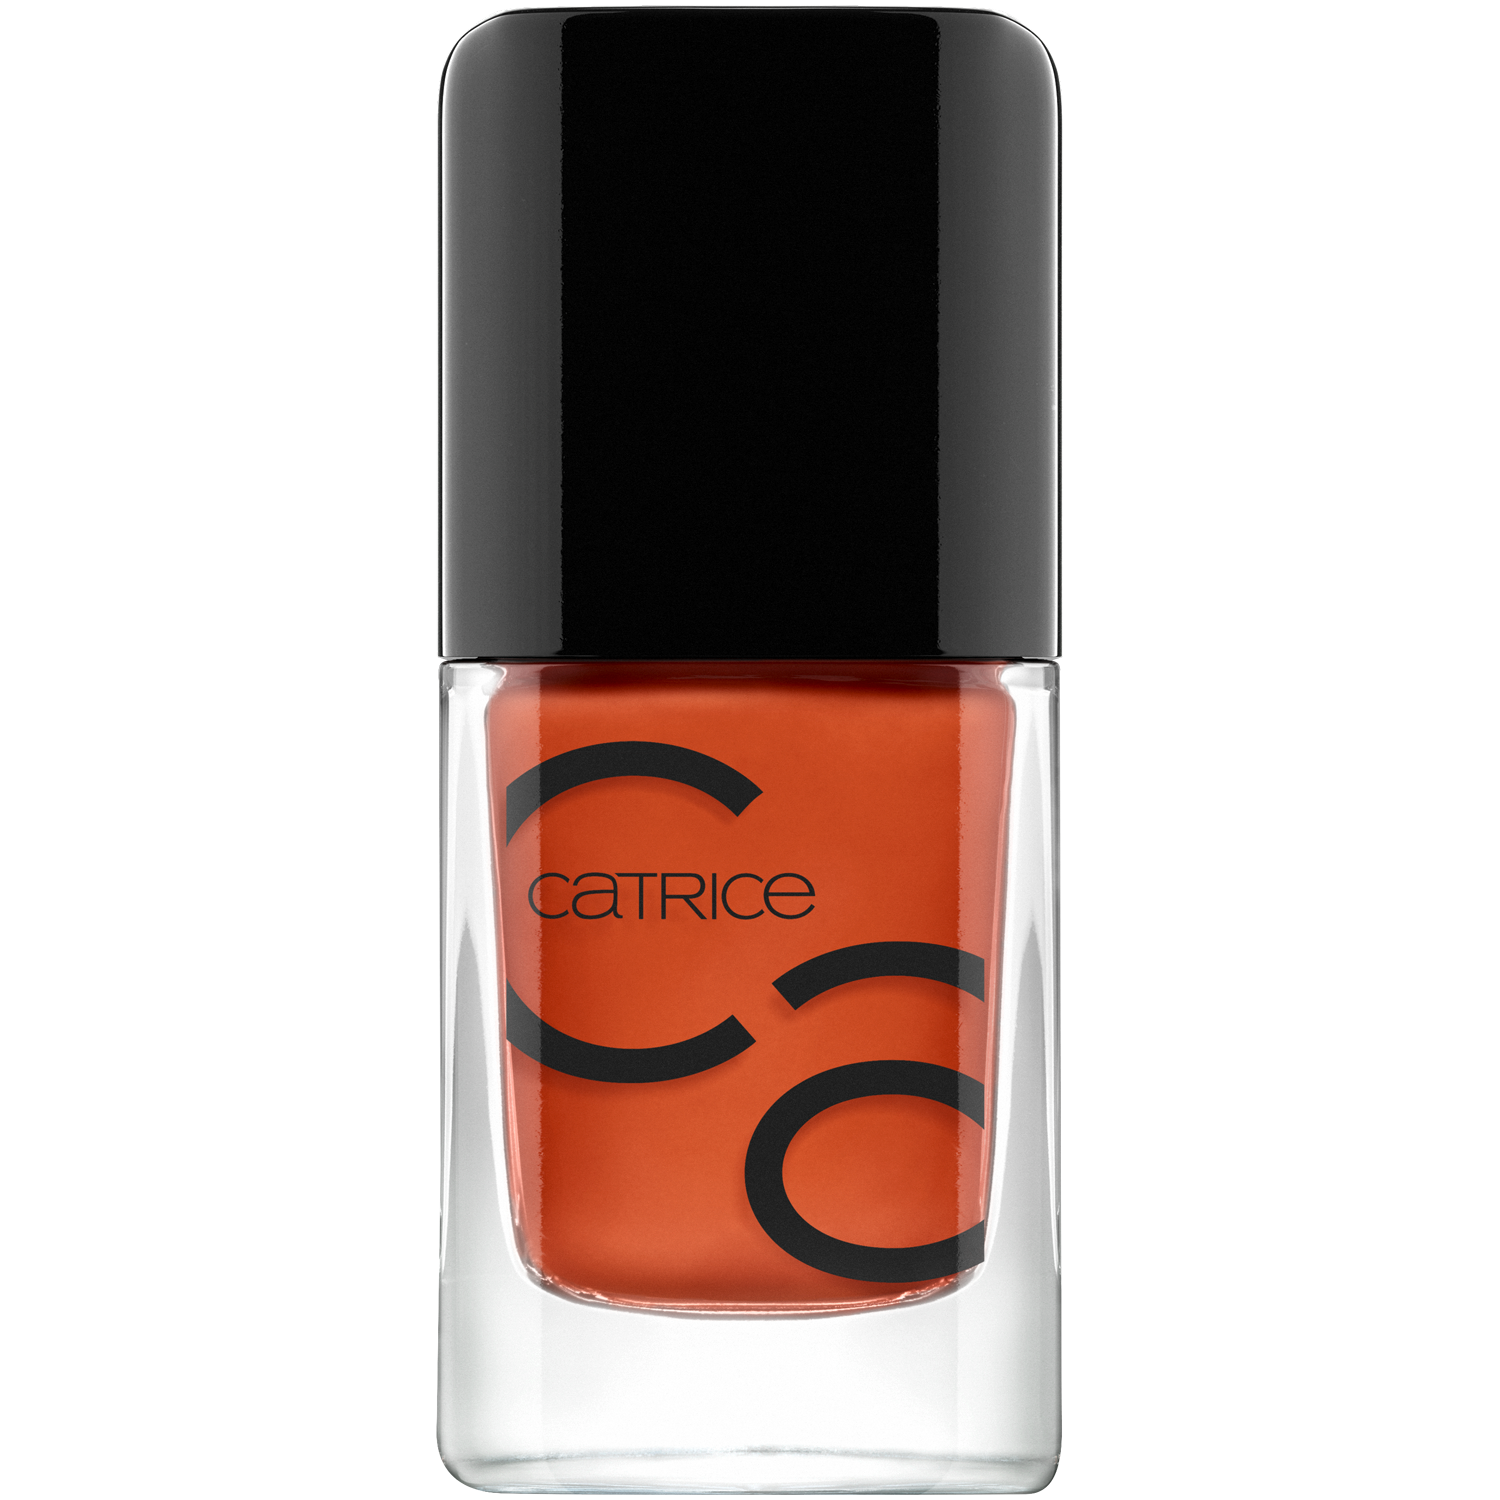 Catrice Lakier Do Paznokci Orange Is The New Black 83 10 5 Ml Hebe Pl